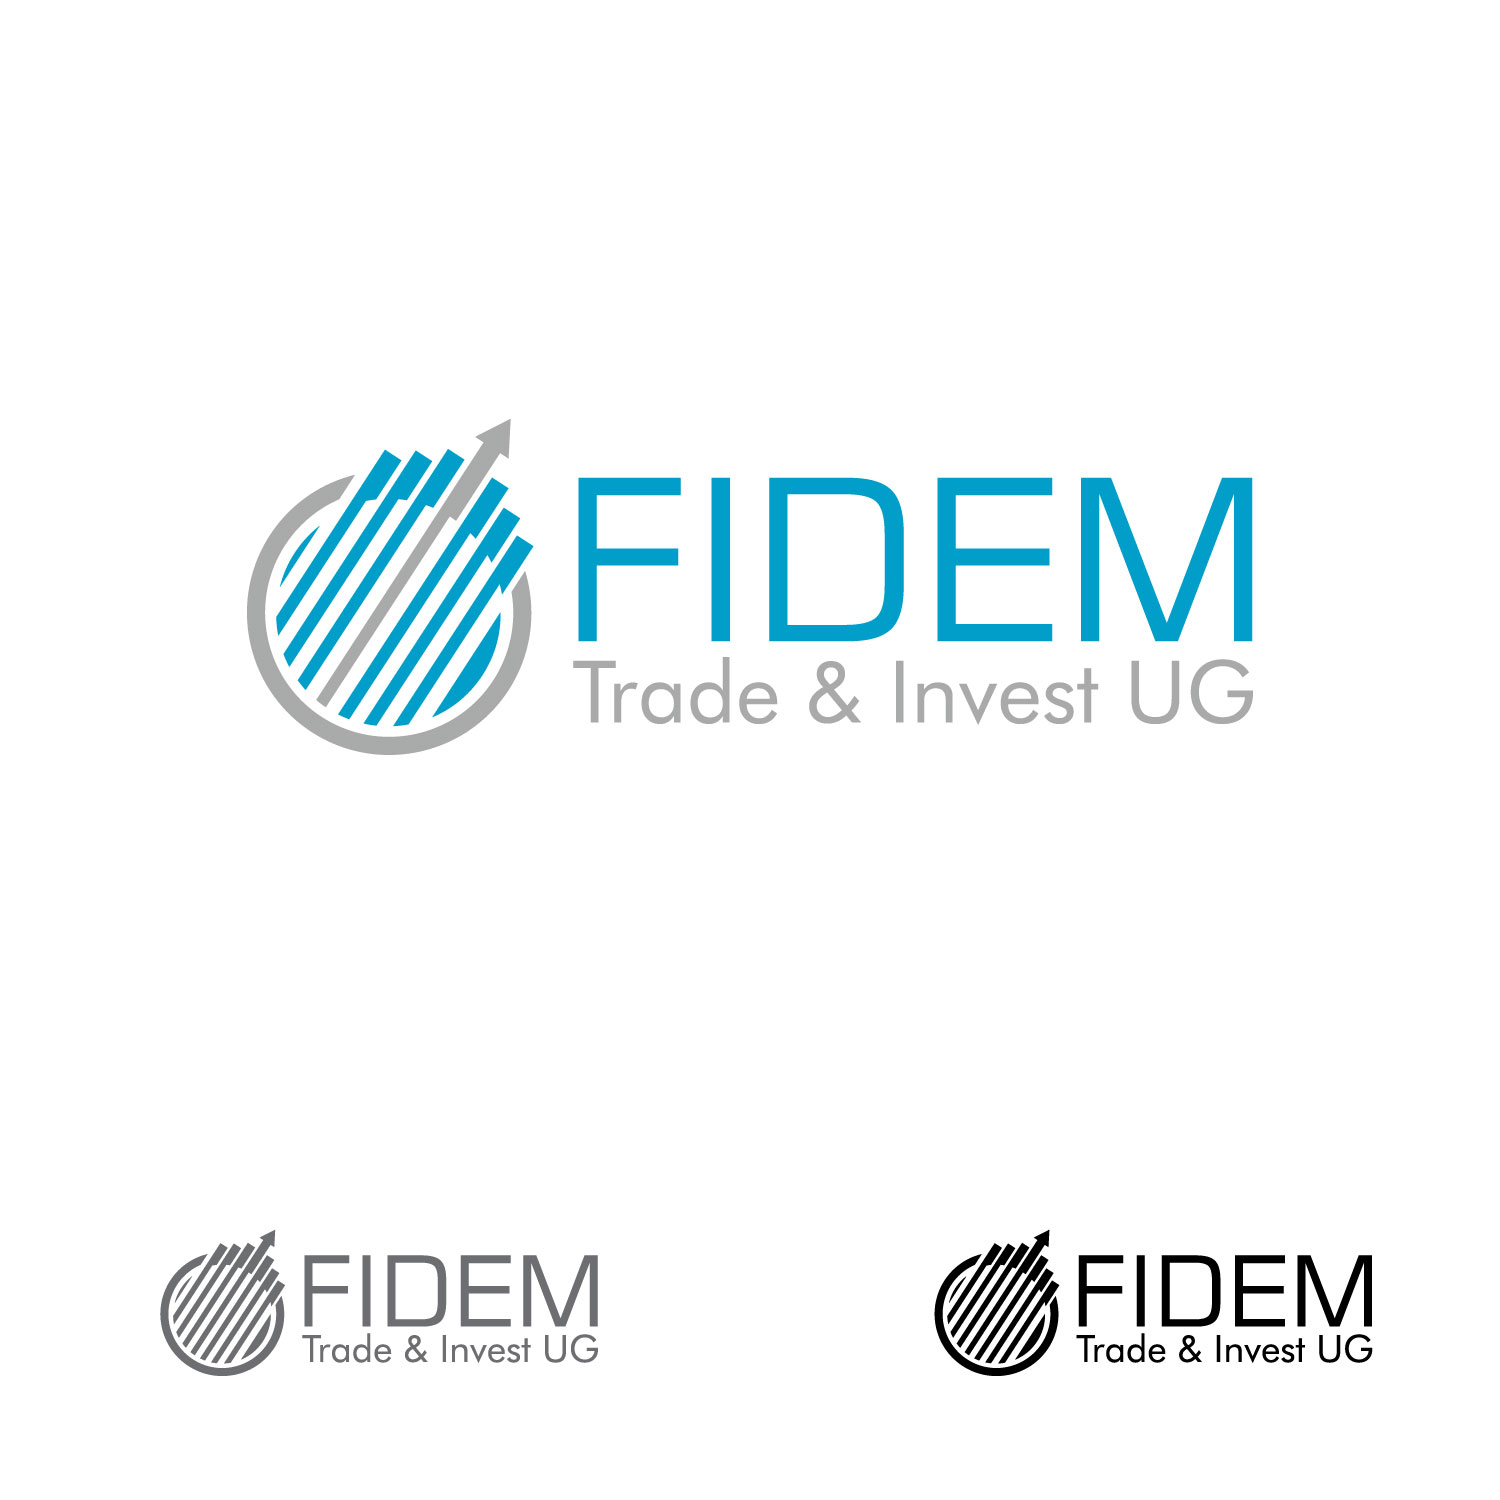 Logo Design by lagalag - Entry No. 572 in the Logo Design Contest Professional Logo Design for FIDEM Trade & Invest UG.